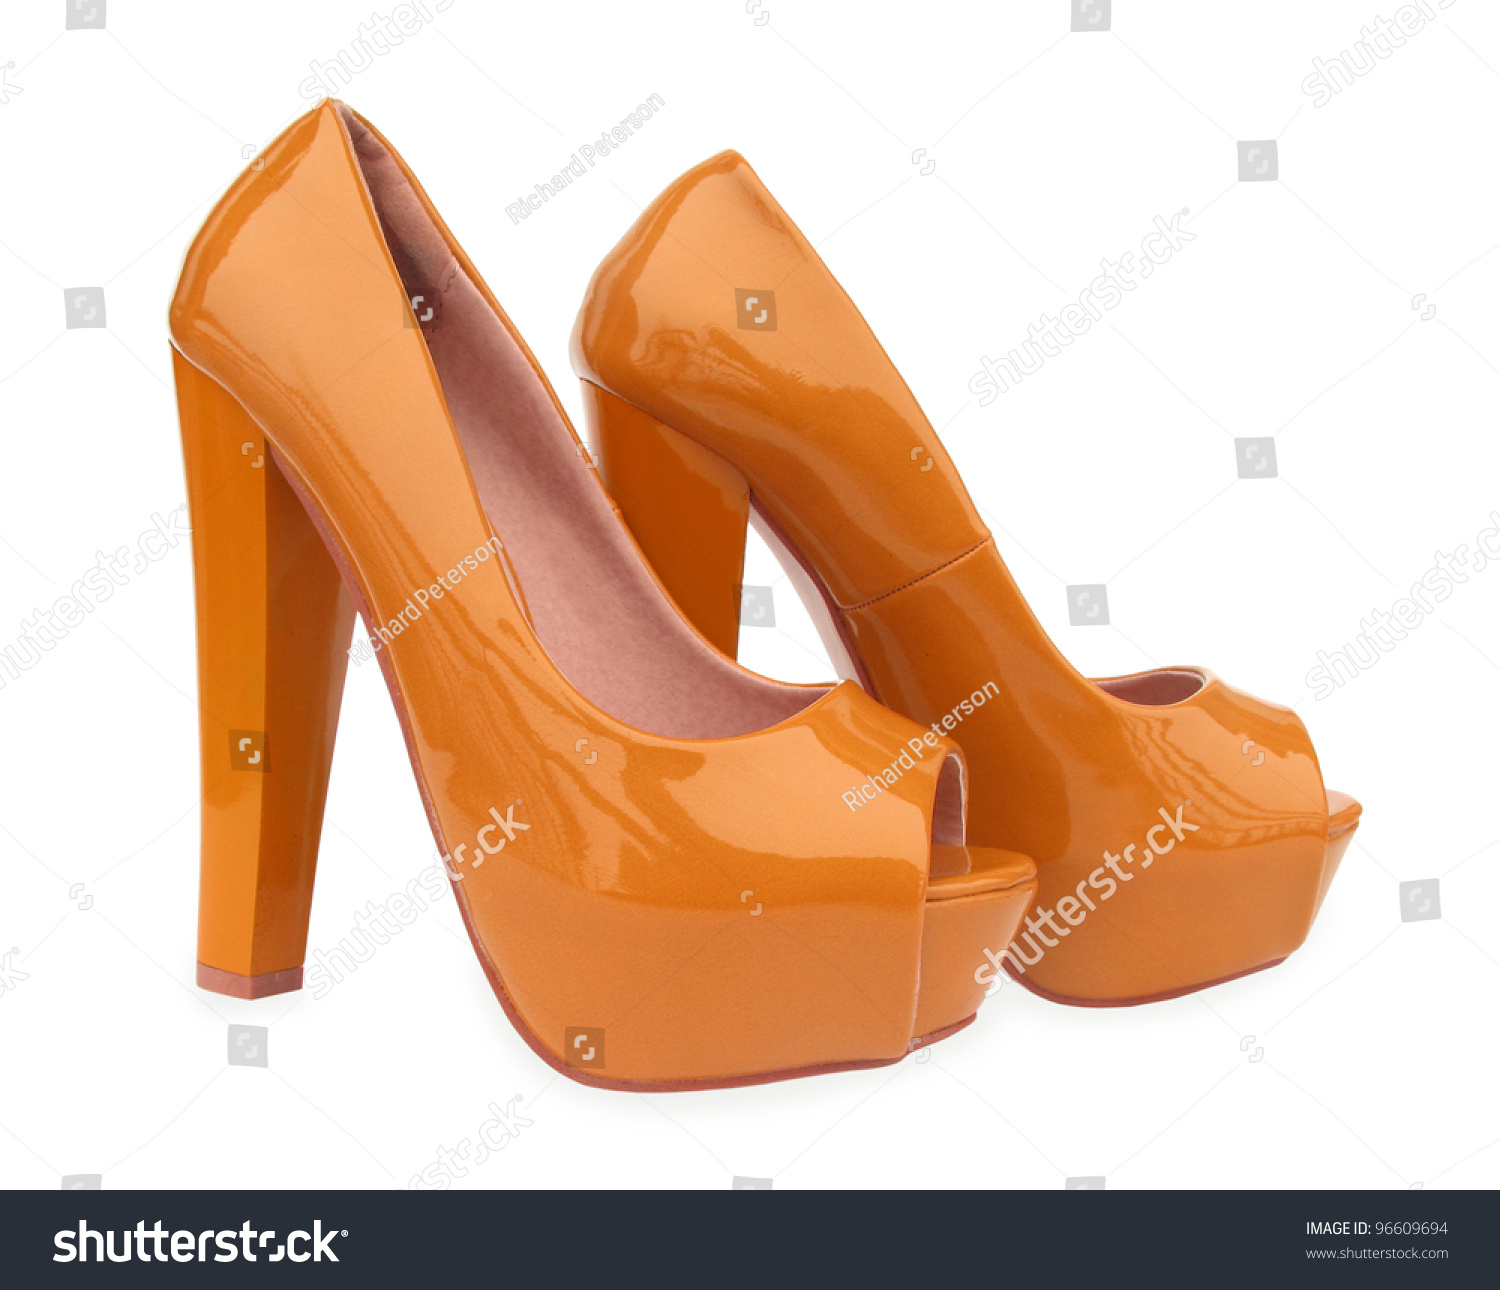 Brown High Heels Open Toe Pump Stock Photo 96609694 - Shutterstock